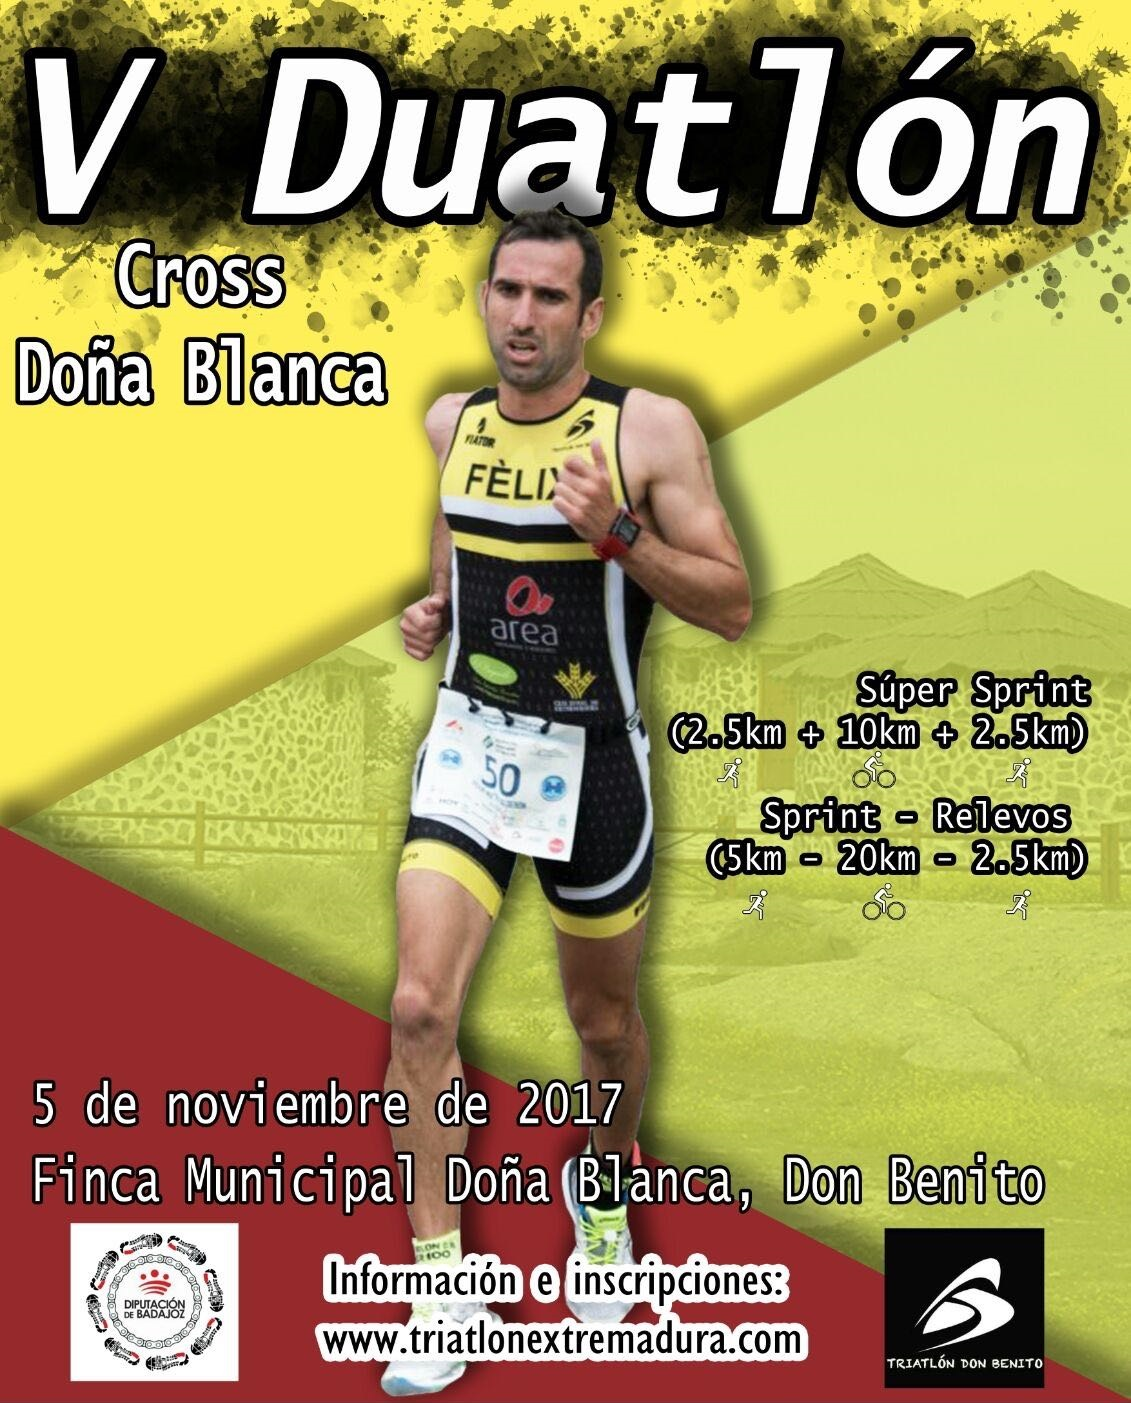 El V Duatlón Cross se celebrará este domingo en Don Benito